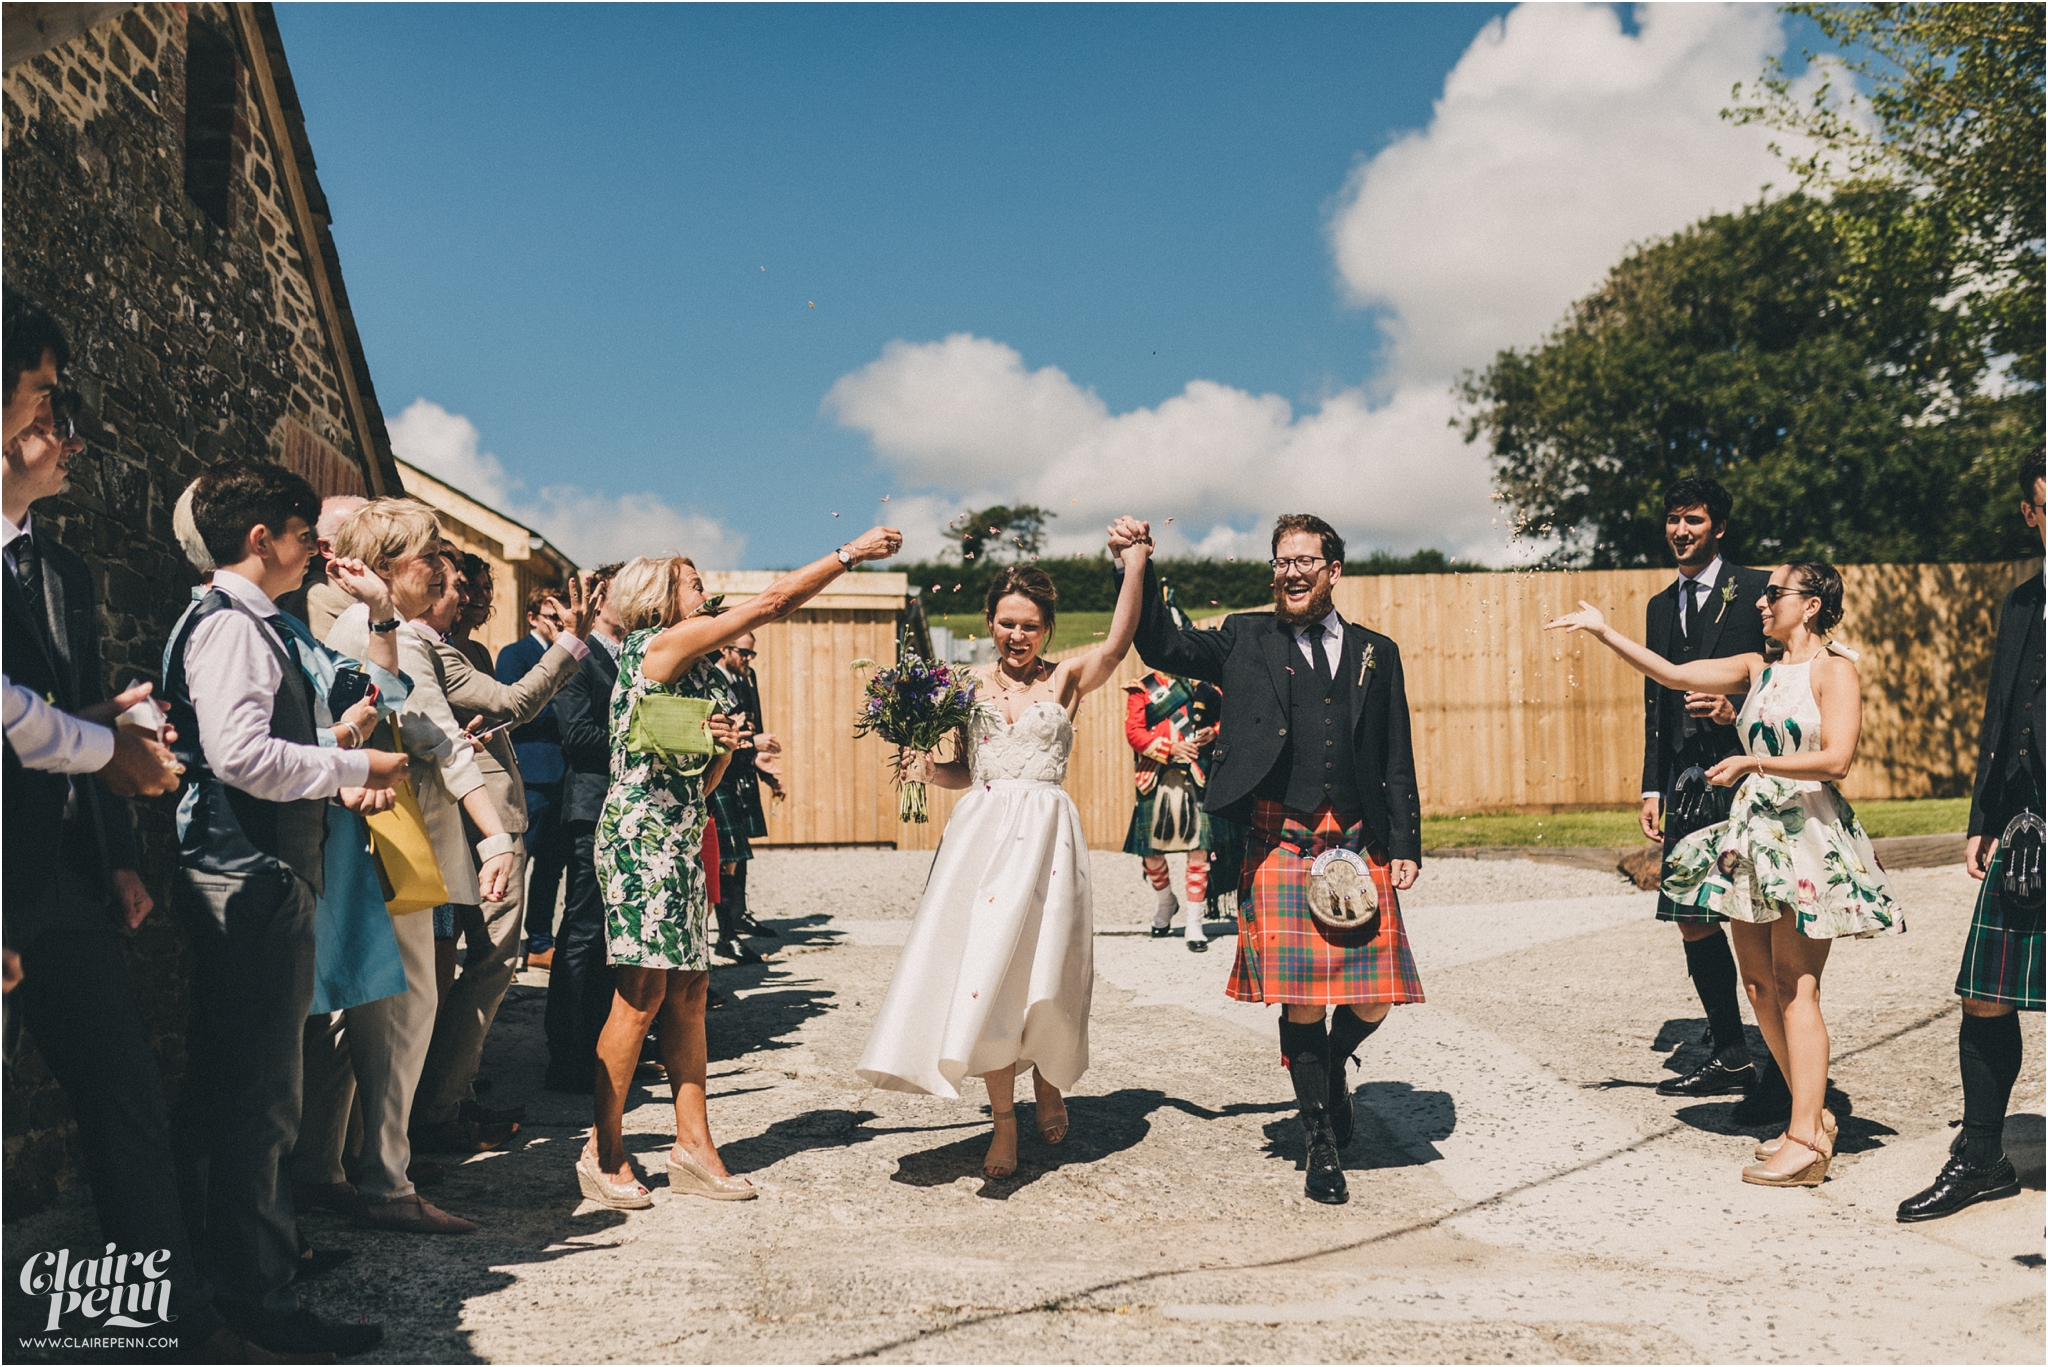 Launcells Barton barn wedding Launceston Bude Cornwall_0032.jpg